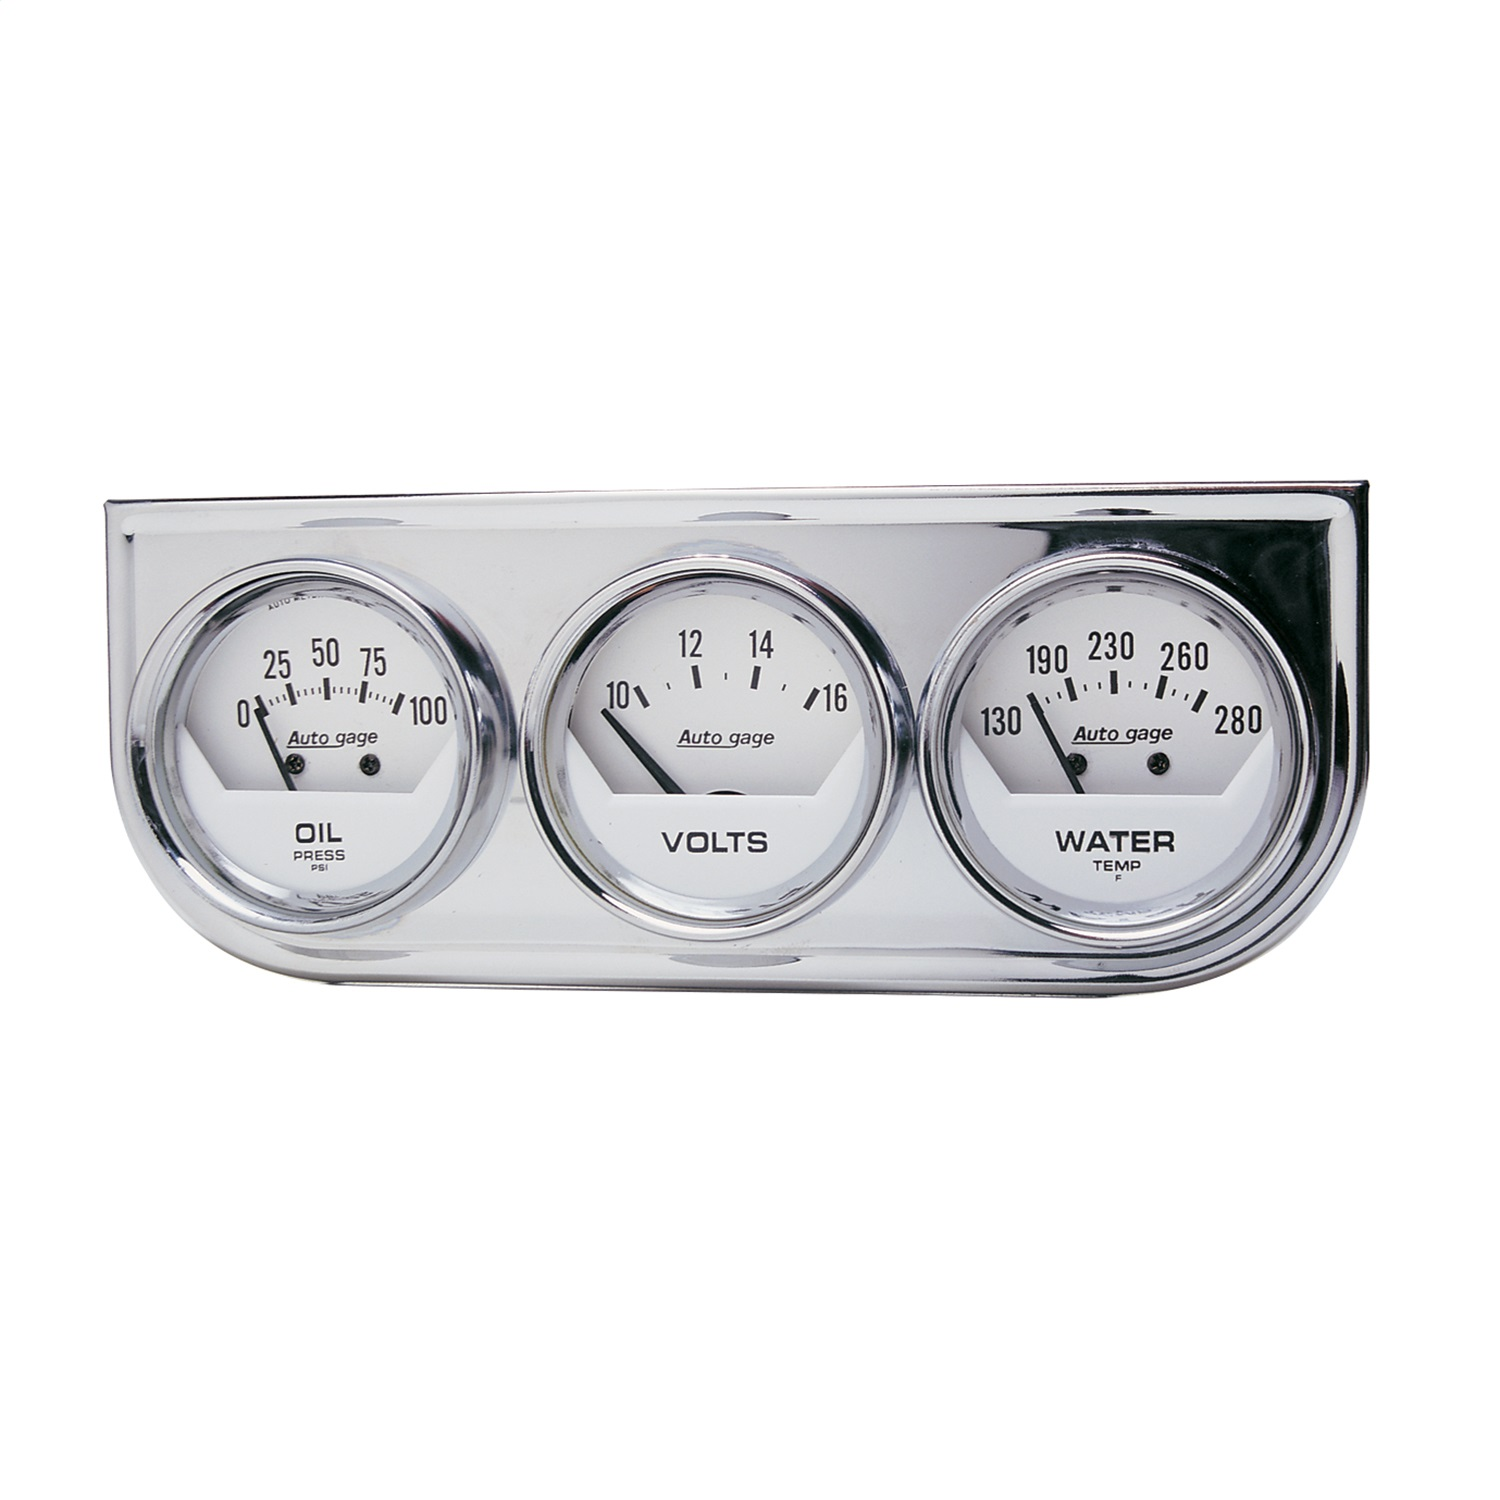 AUTO METER 2325 2IN 3 GAUGE CONSOLE, OIL/ WATER/VOLT, MECH, CHROME